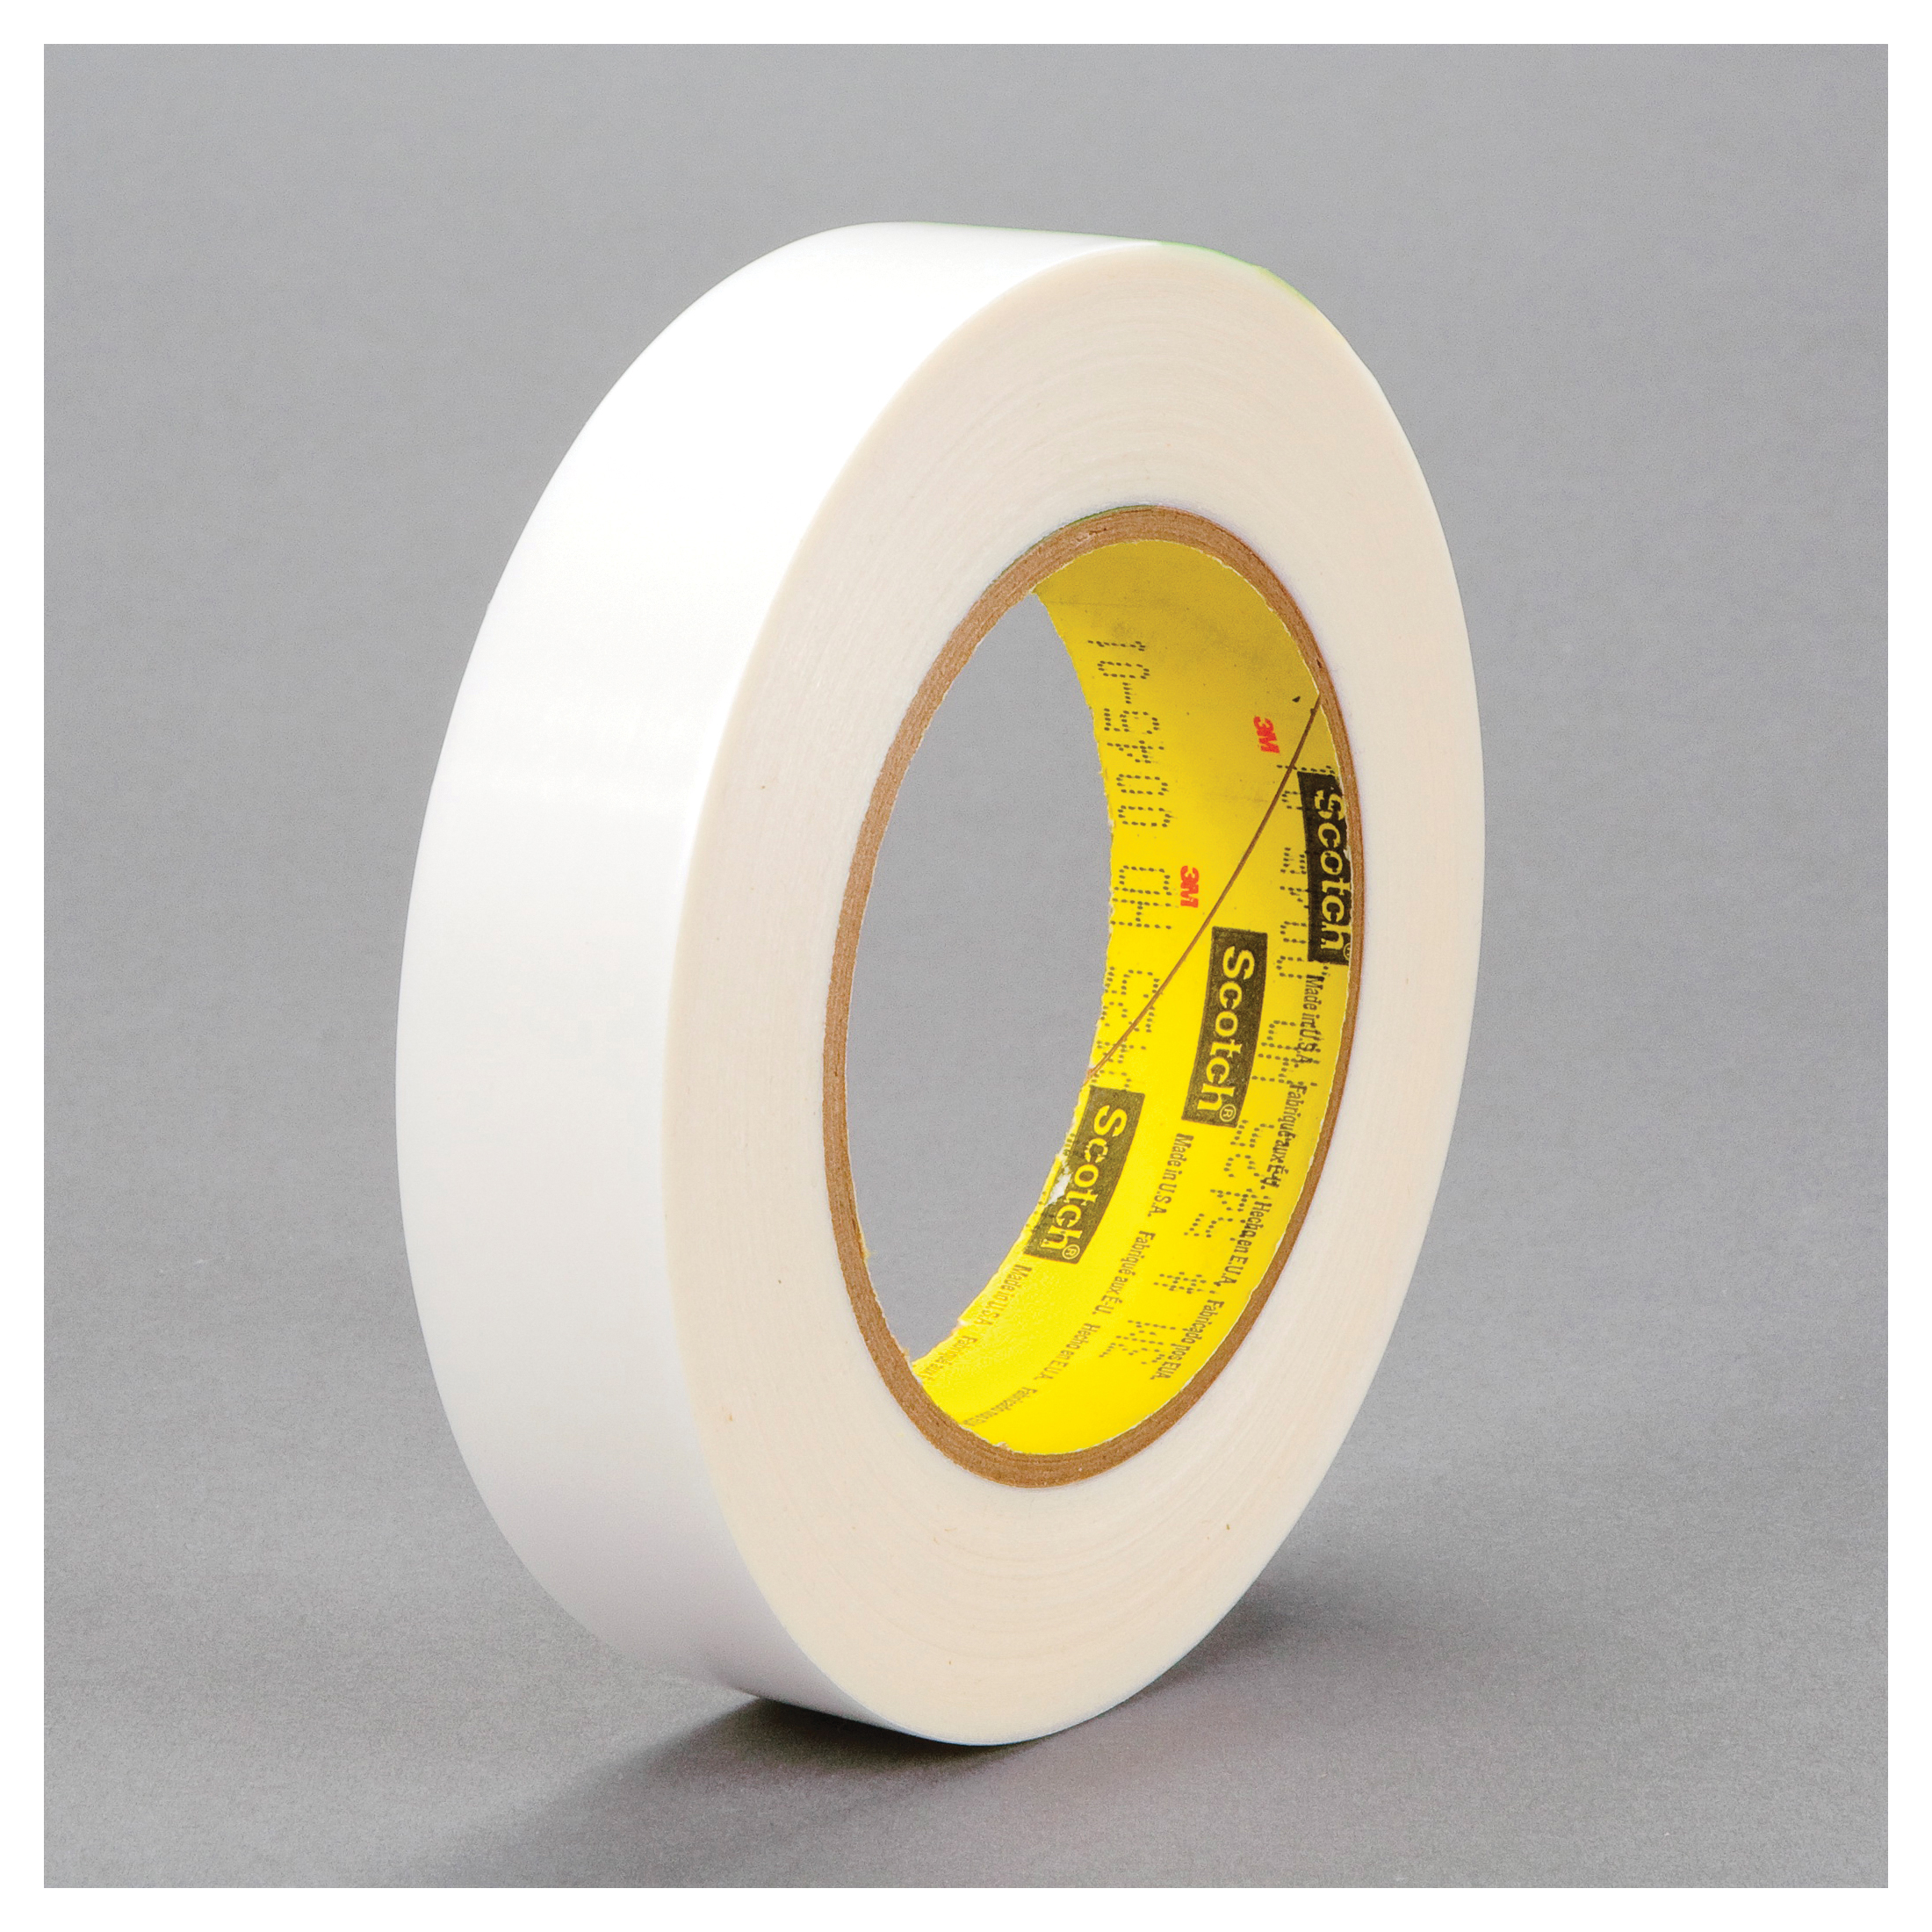 3M™ 021200-61331 Film Tape, 36 yd L x 1 in W, 4.5 mil THK, Acrylic Adhesive, UHMWP Backing, Transparent